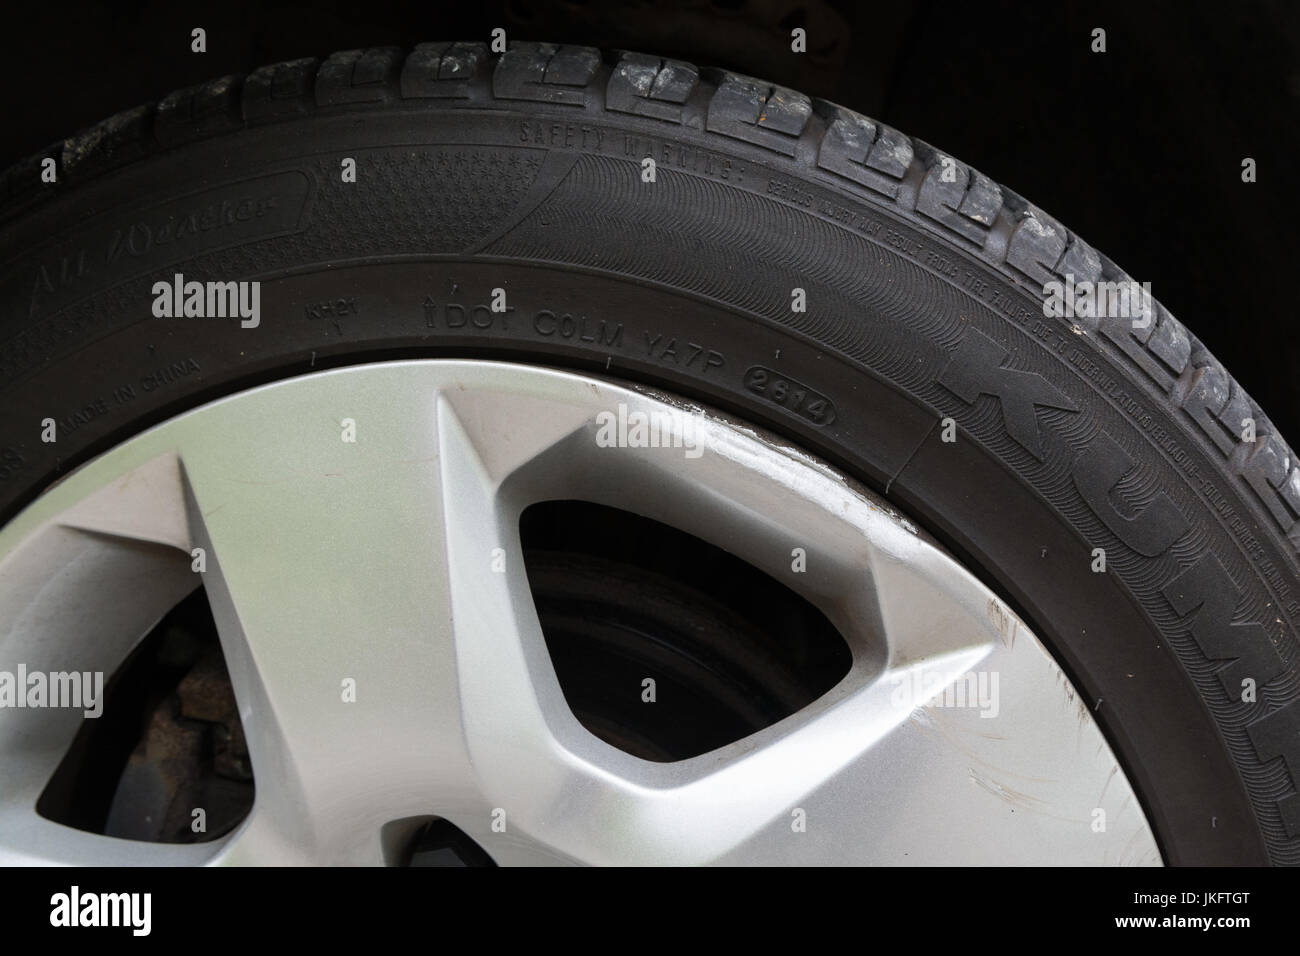 kerbed wheel trims - Stock Image